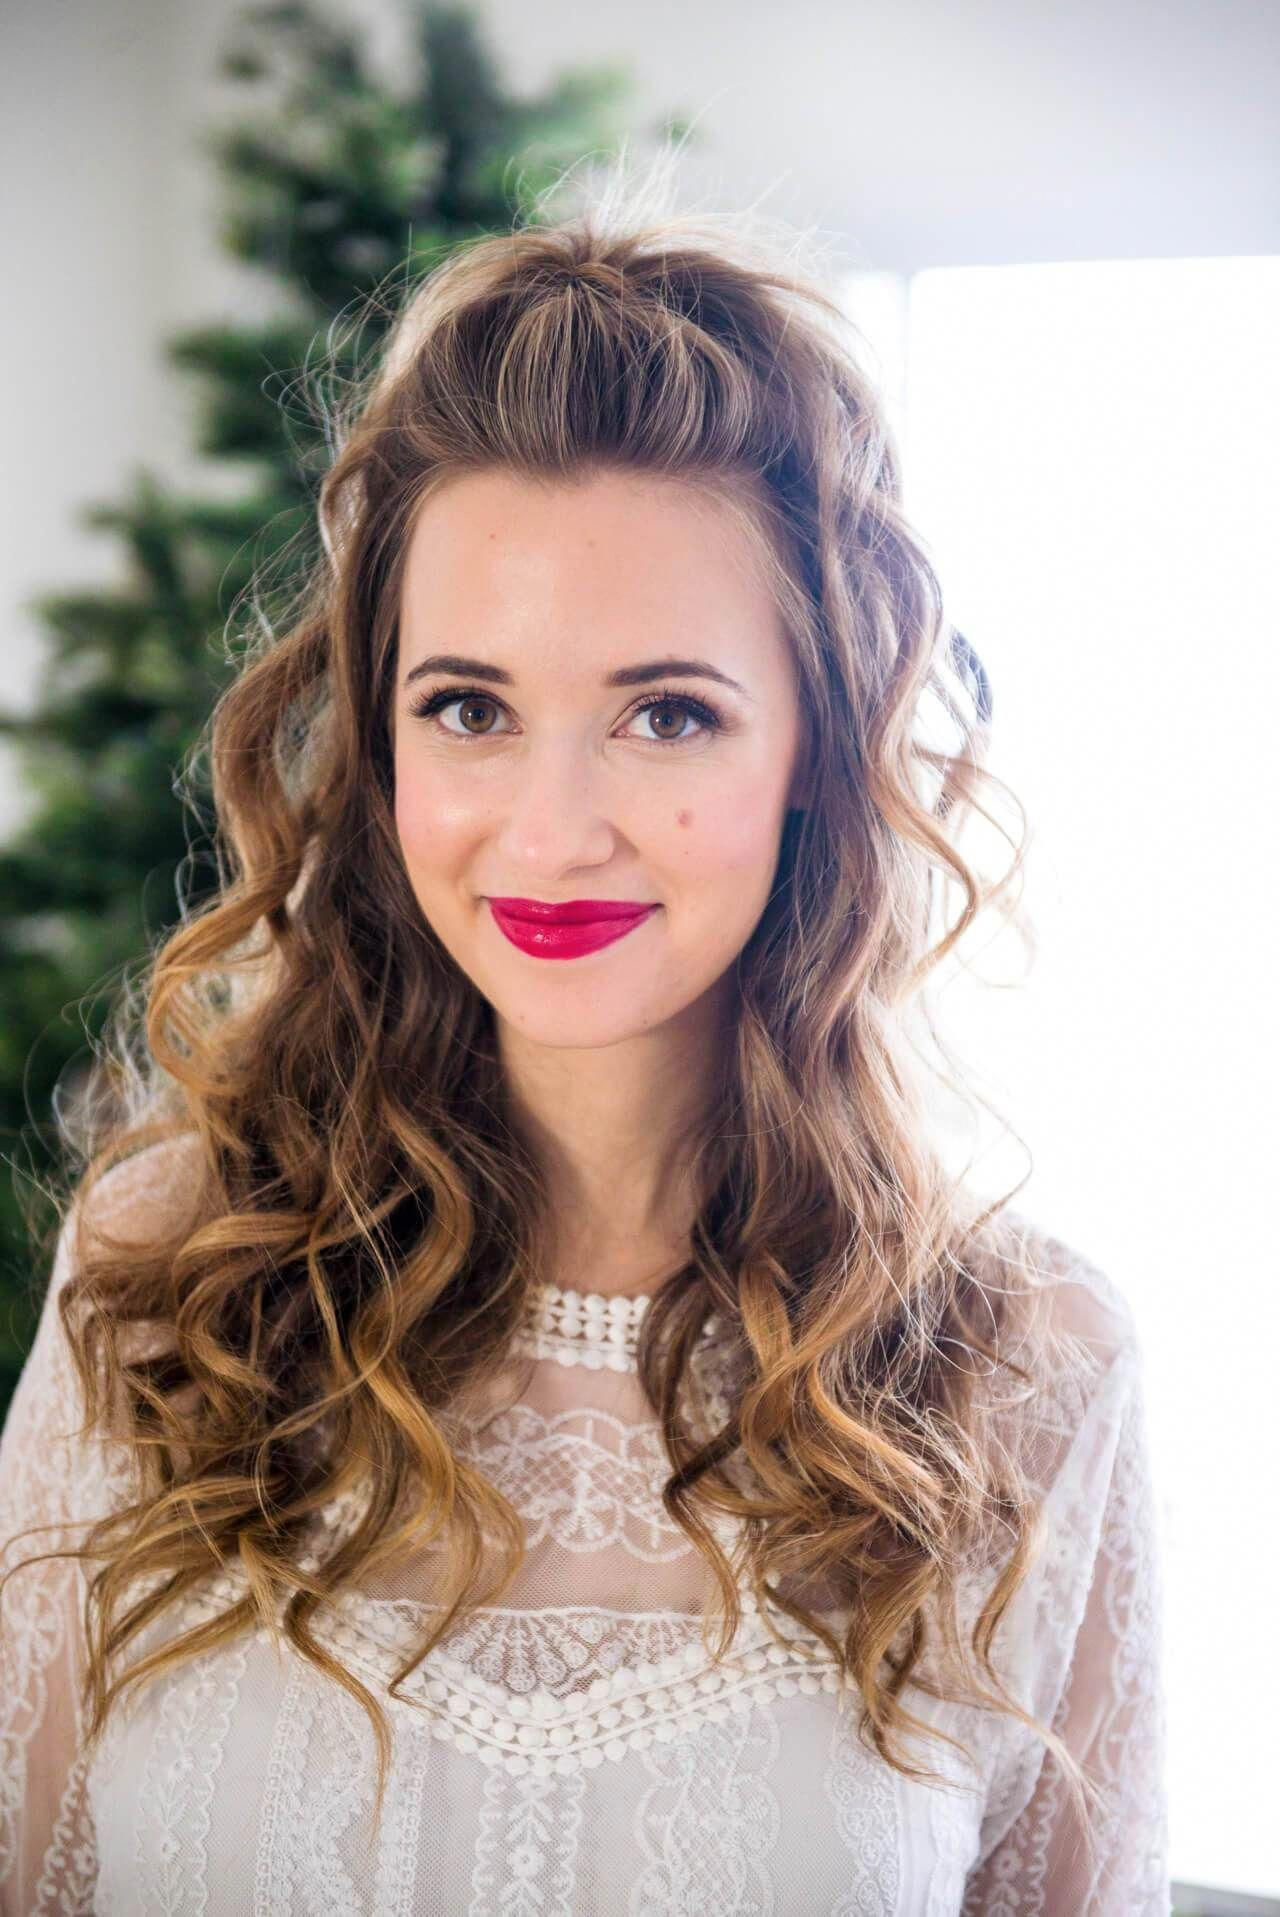 half up curled hair for the holidays #Longhaircurls | Half up curled hair, Holiday hairstyles ...